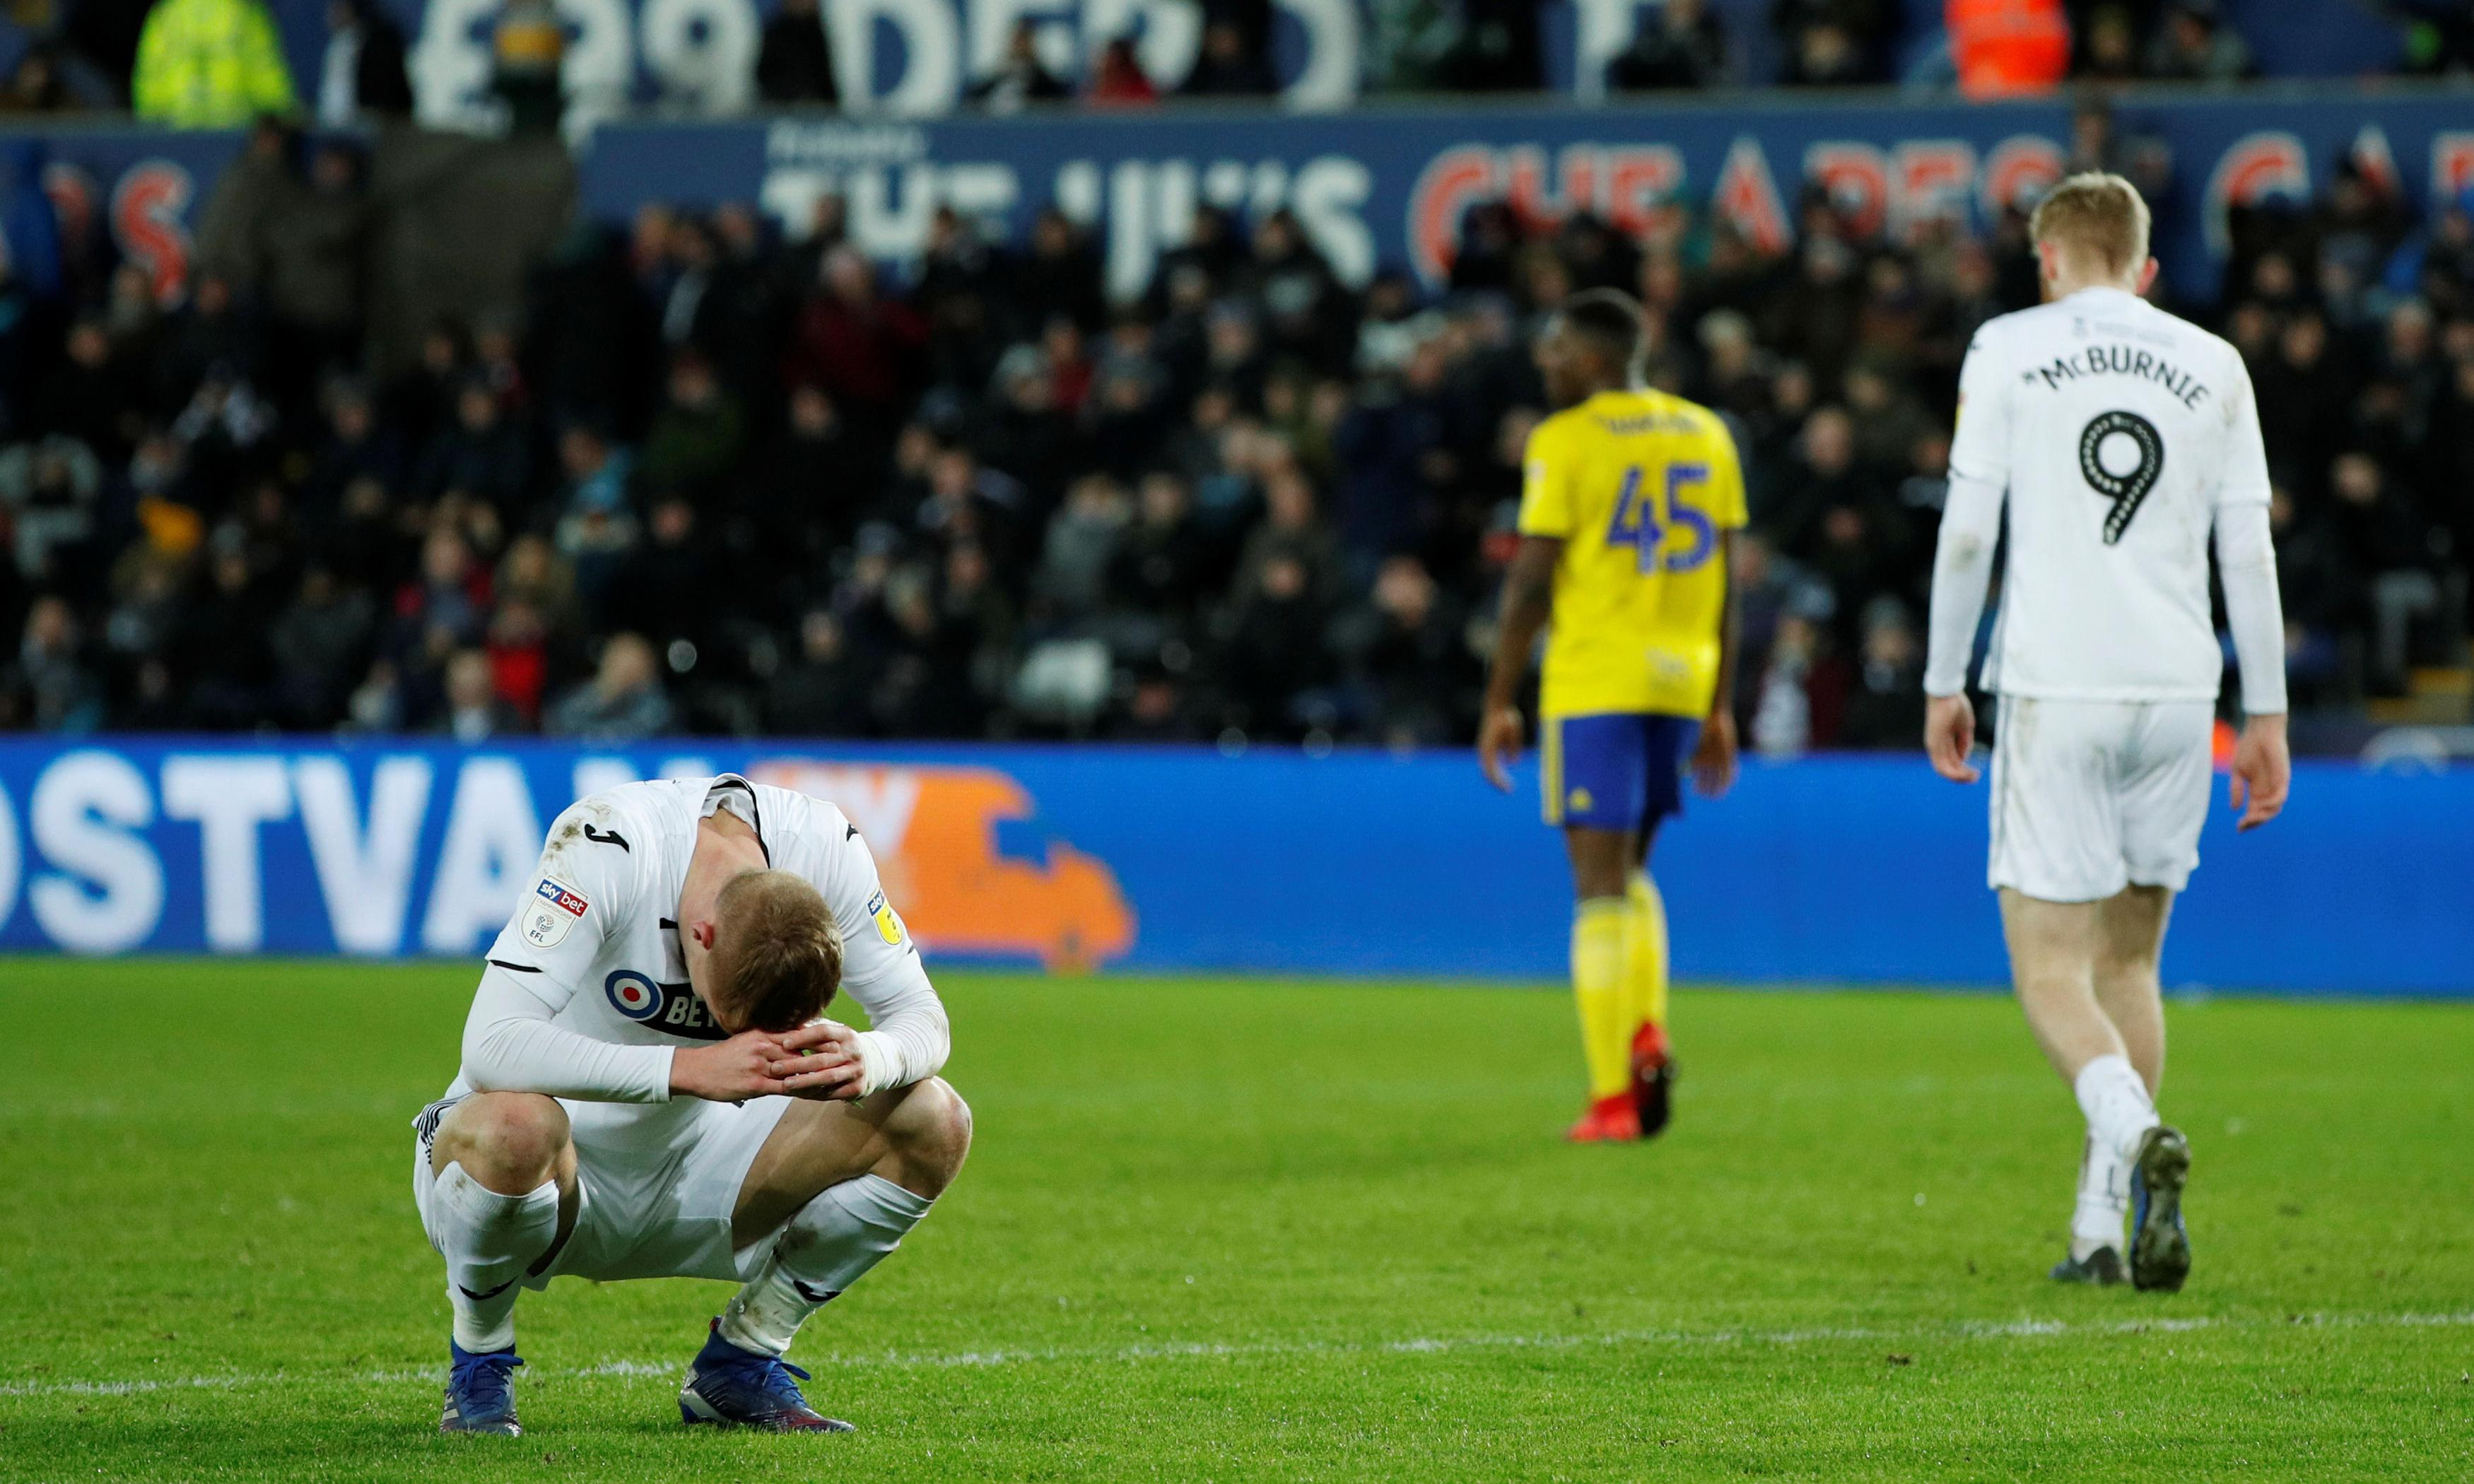 How Swansea City went from model club to desperate cautionary tale